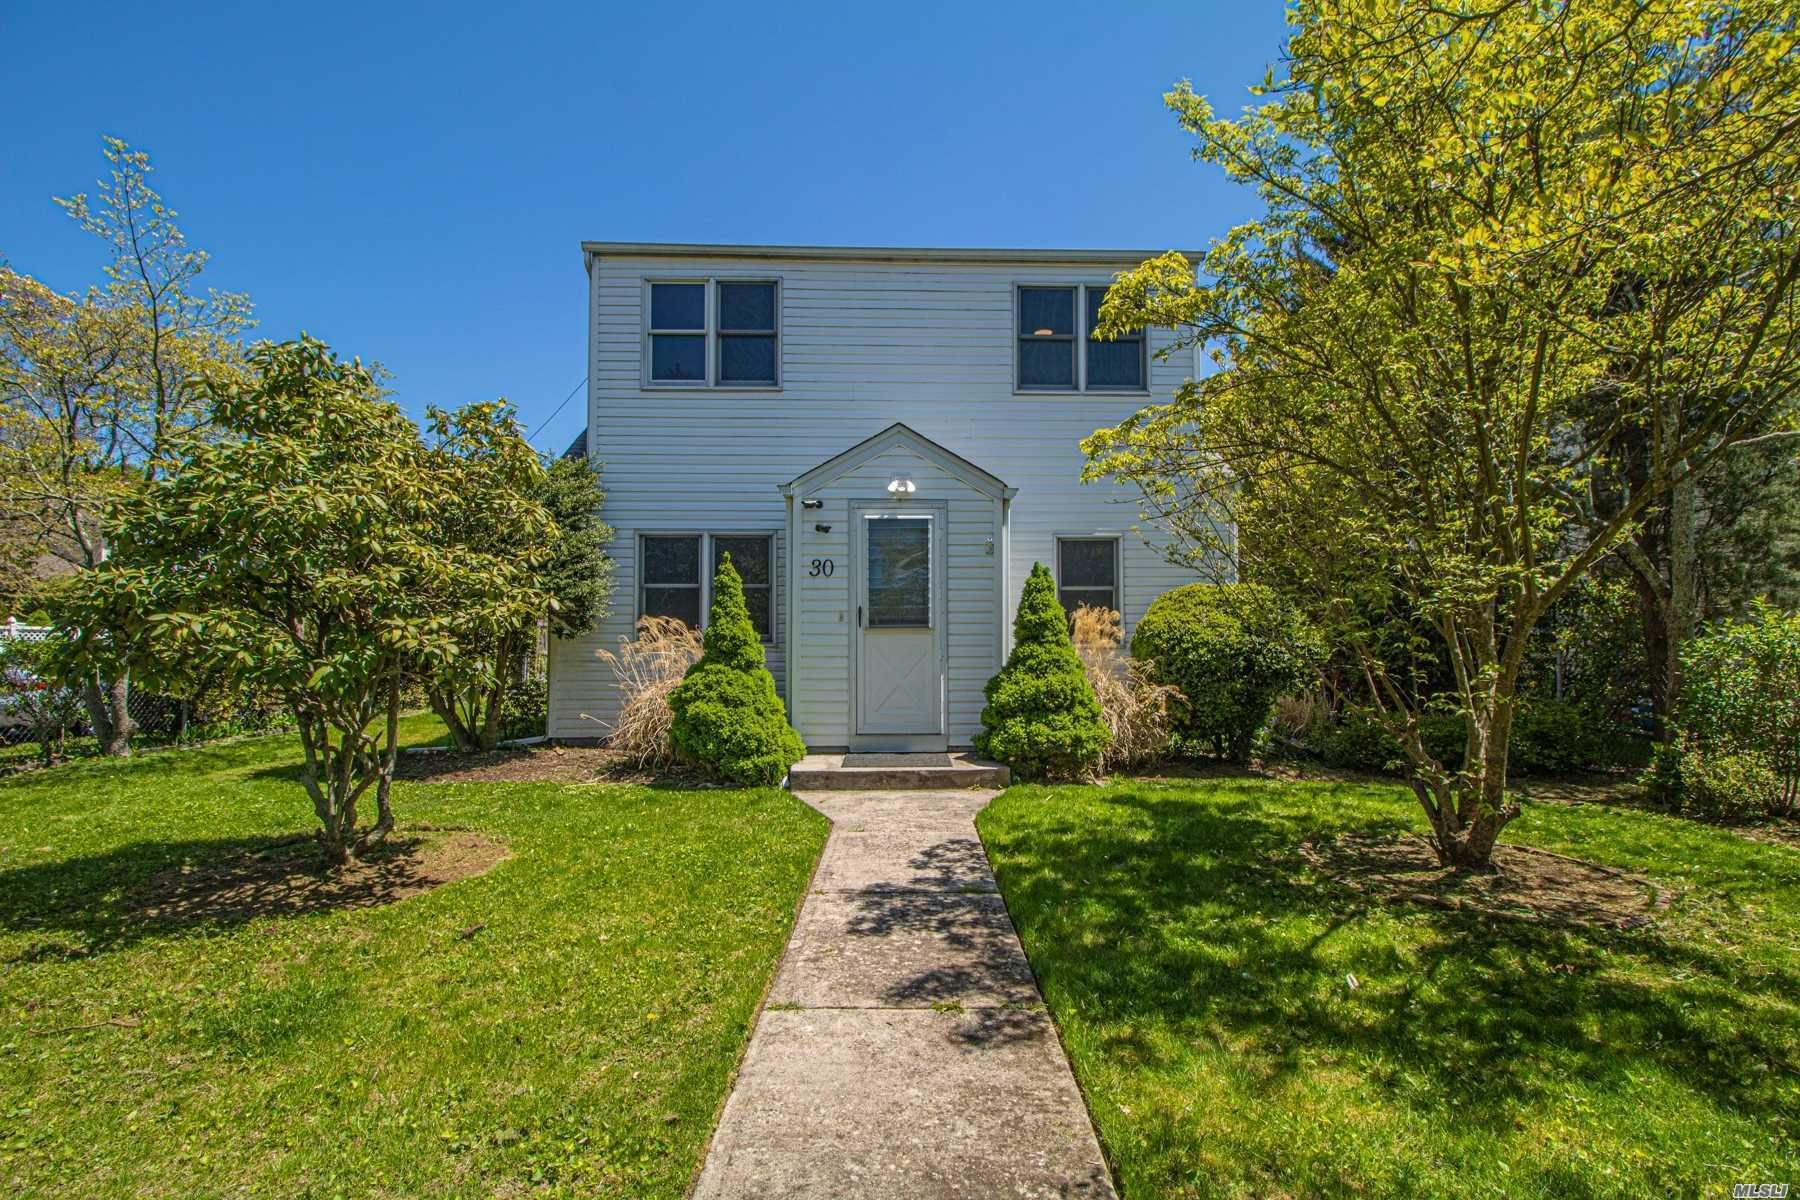 30 Goeller Ave, Huntington Station, NY 11746 - MLS#: 3215262